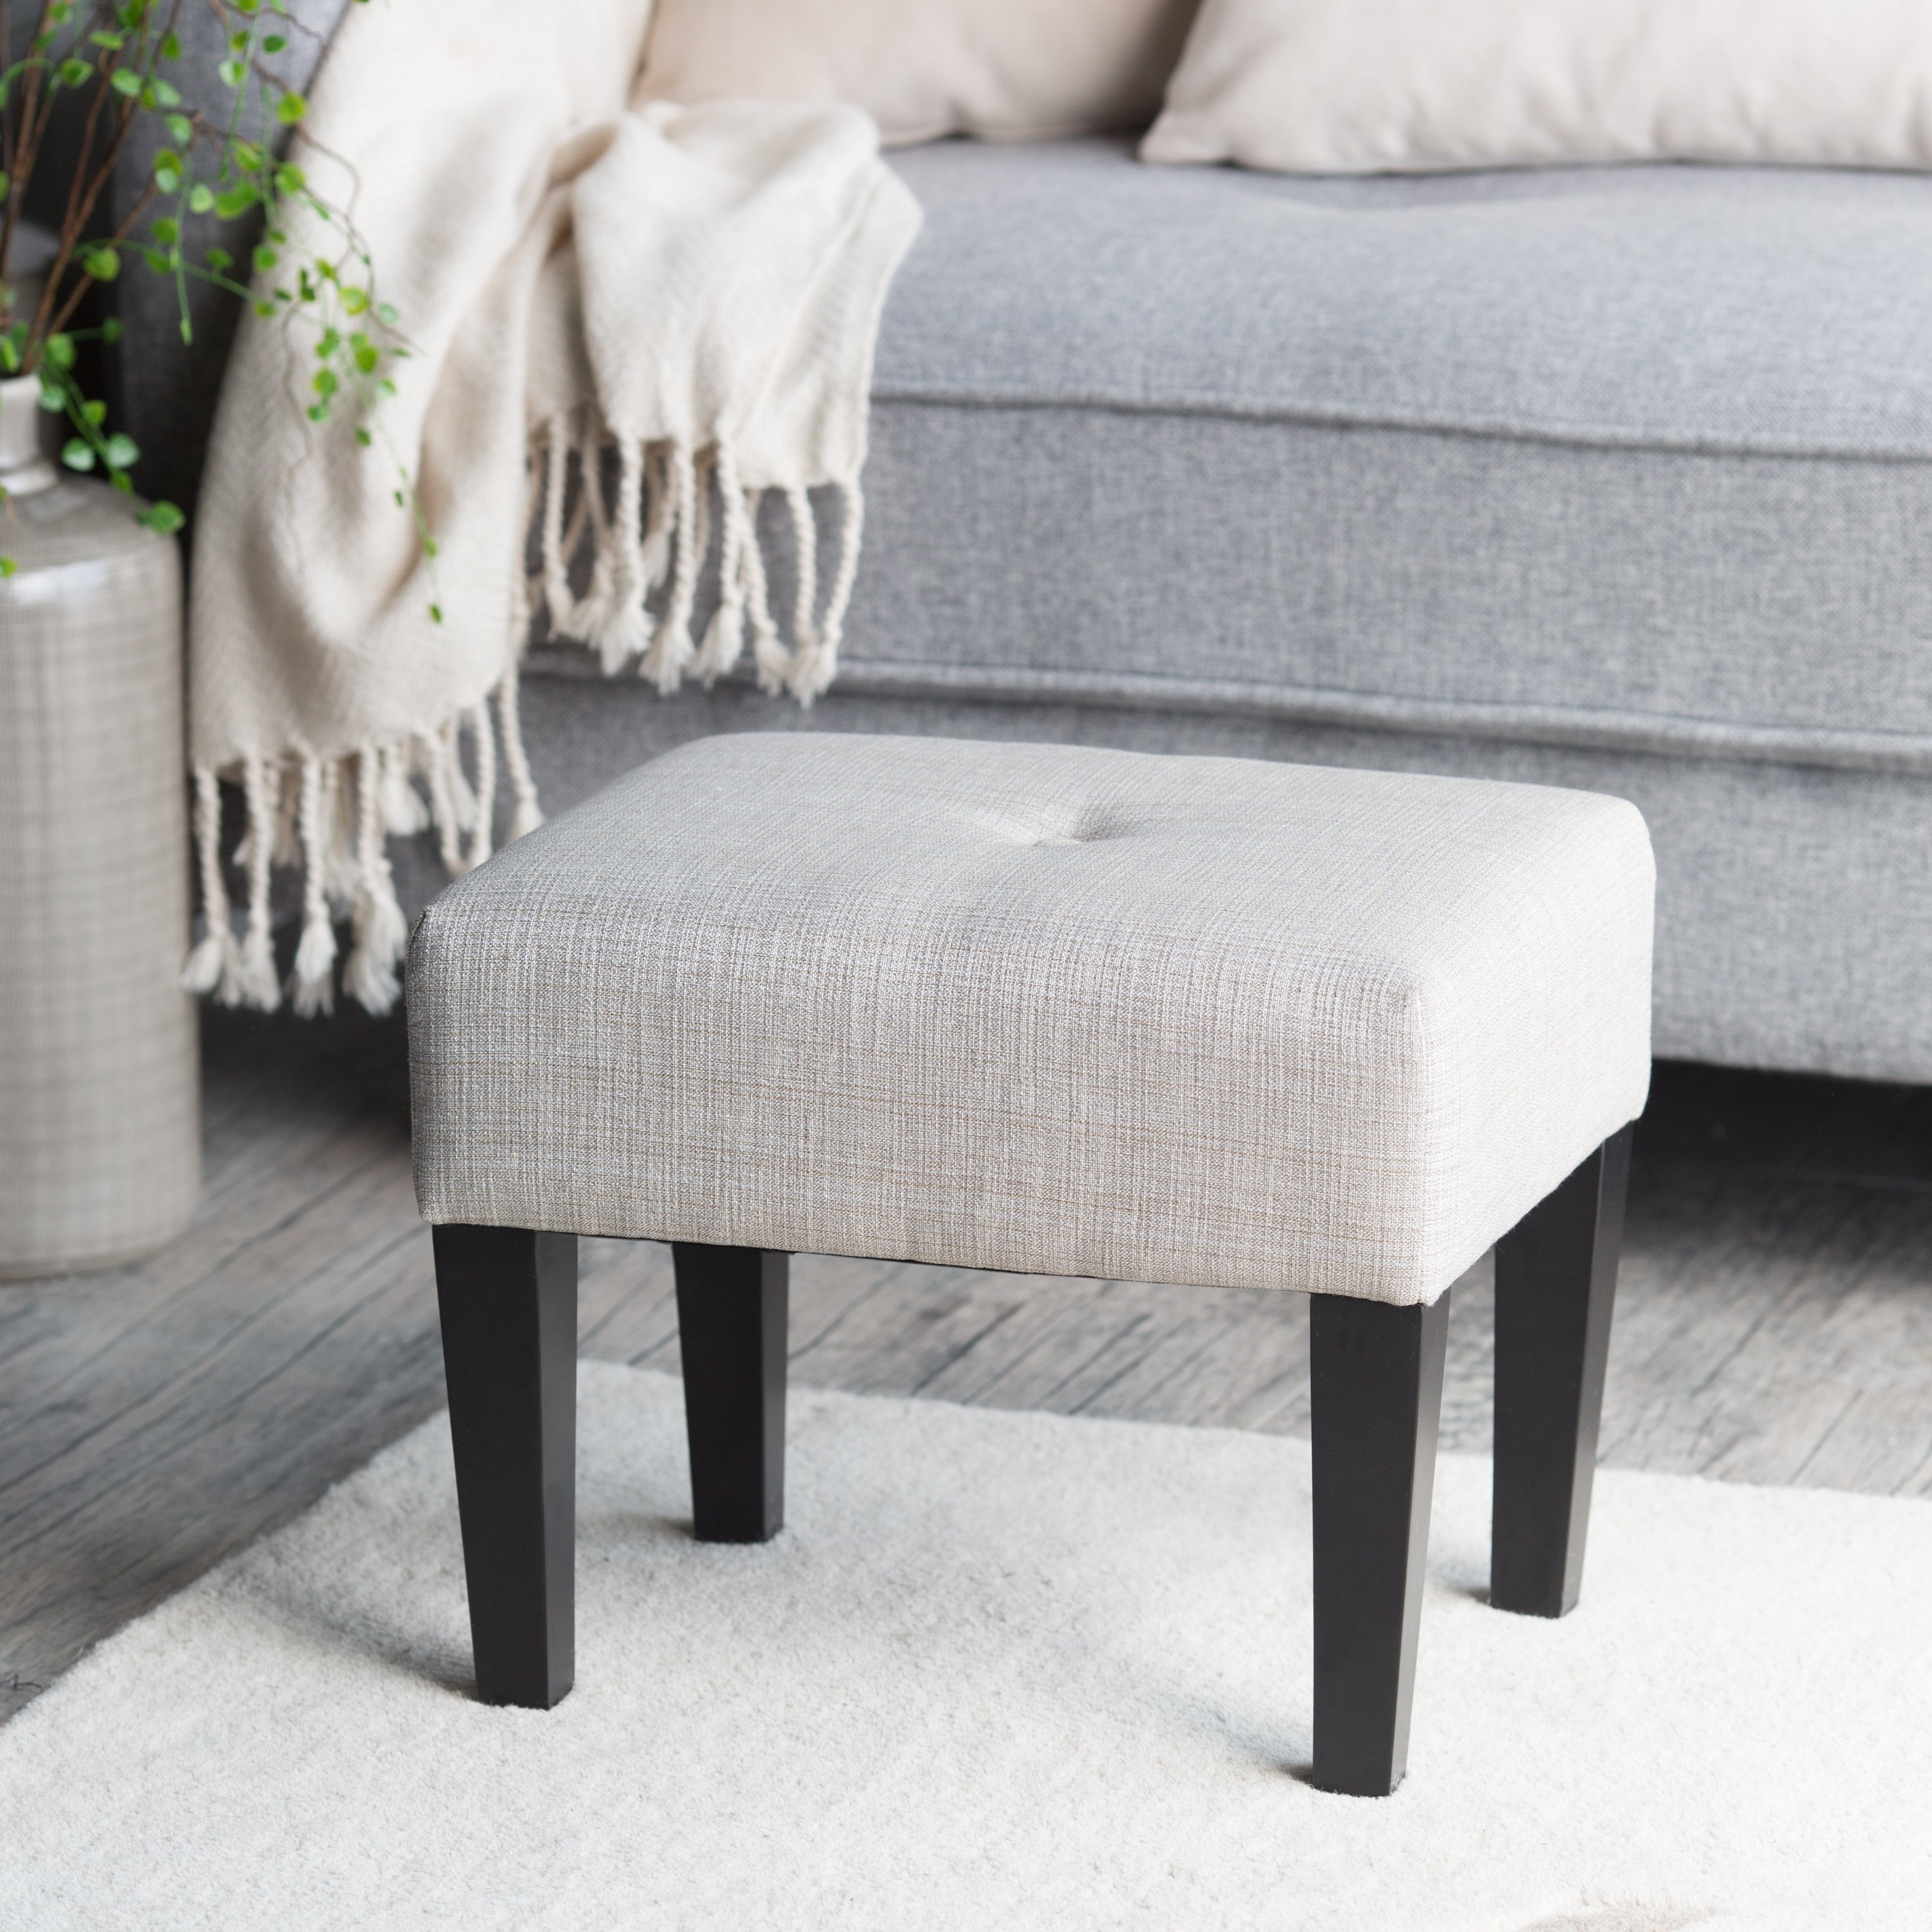 Sofa Small Upholstered Footstool Footstools With Casters Uk White With Upholstered Footstools (Image 12 of 15)